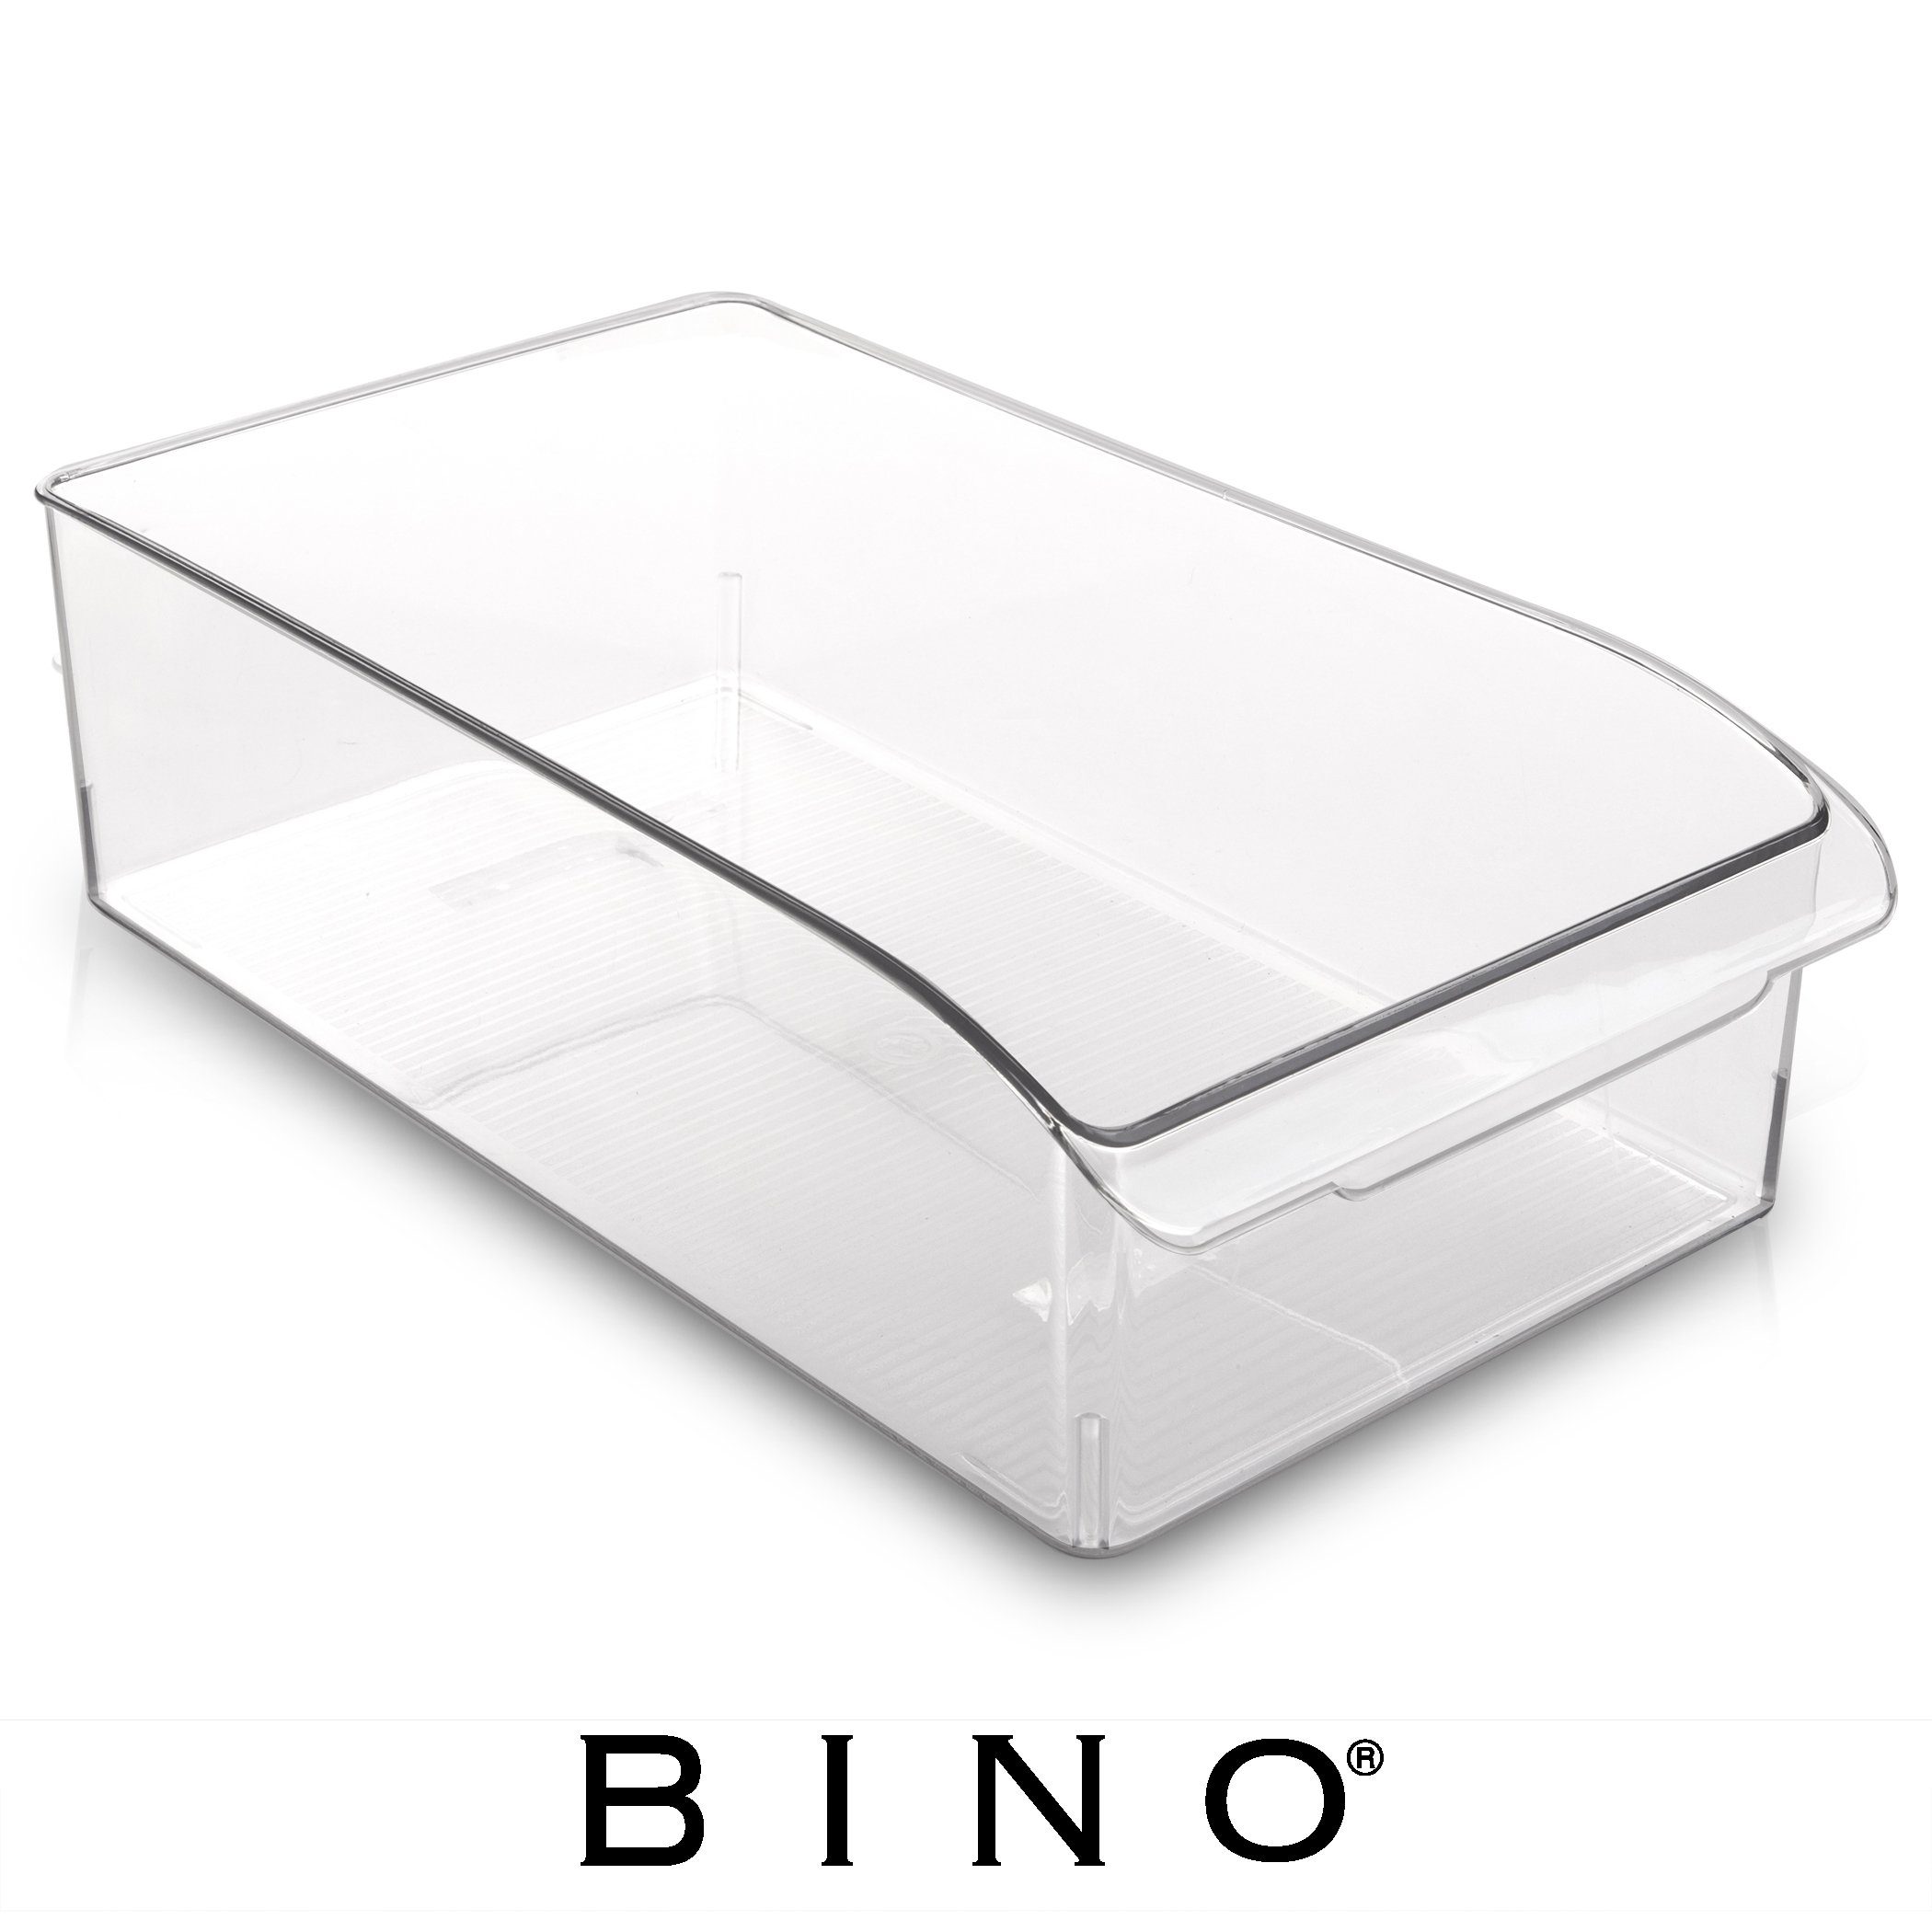 BINO Refrigerator, Freezer and Pantry Cabinet Storage Drawer Organizer Bin, Clear and Transparent Plastic Nesting Container for Home and Kitchen with Built-In Pull Out Handle, Medium